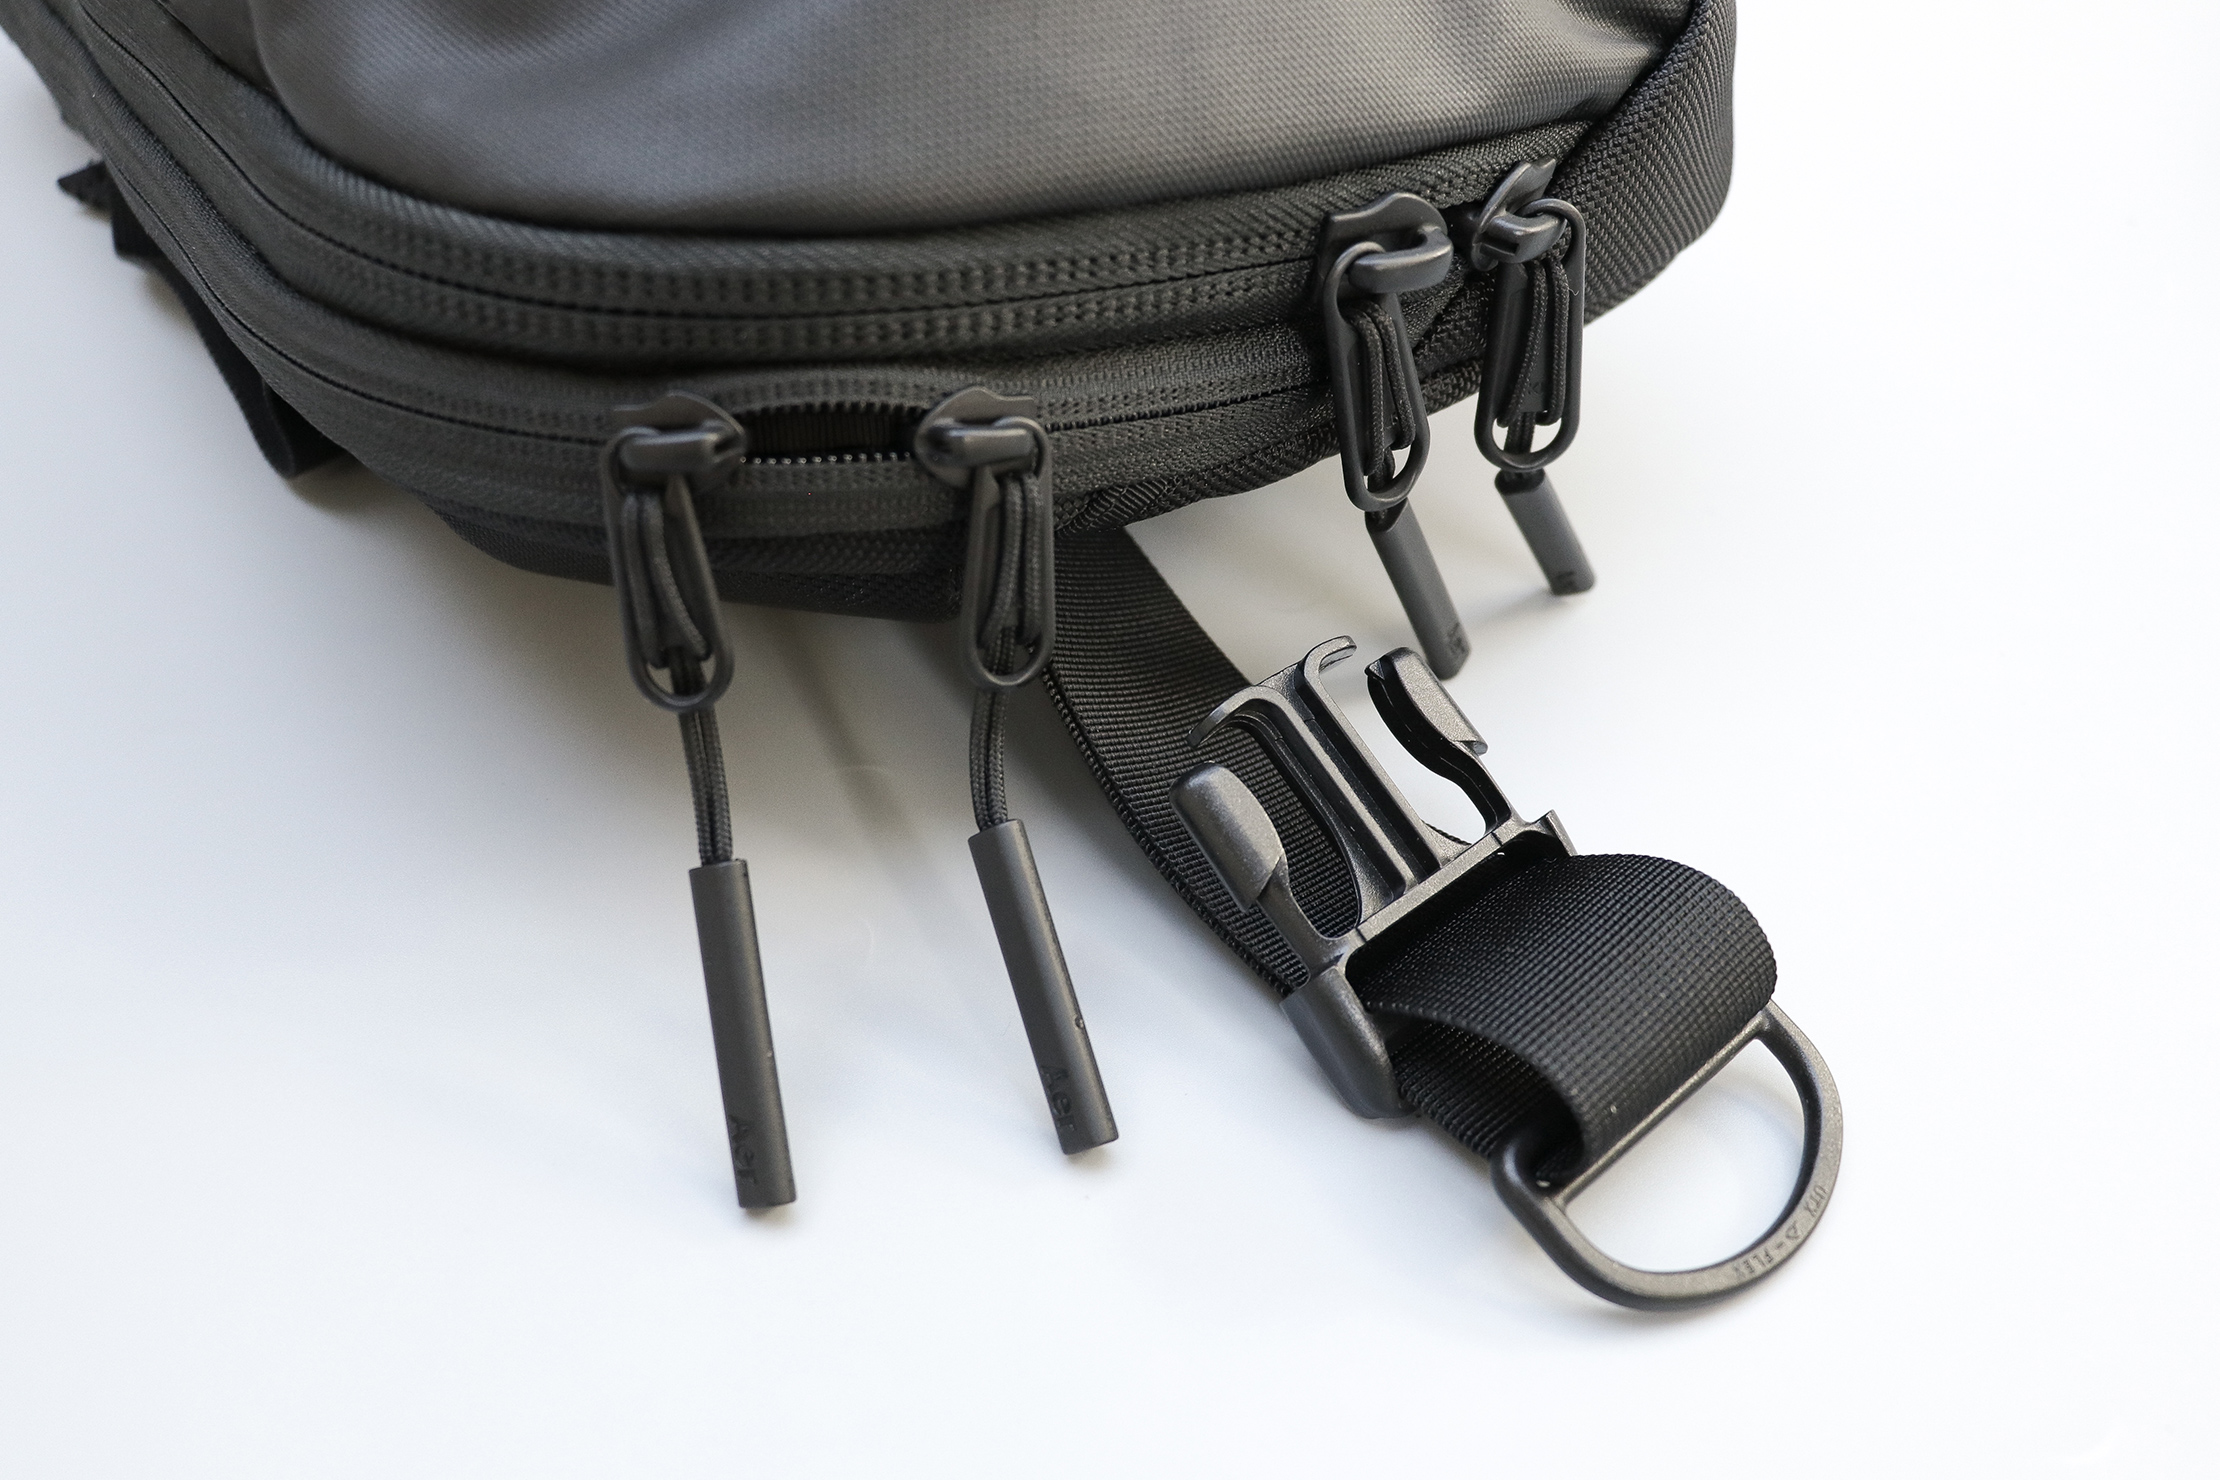 Aer Tech Sling 2 Zippers and Hardware